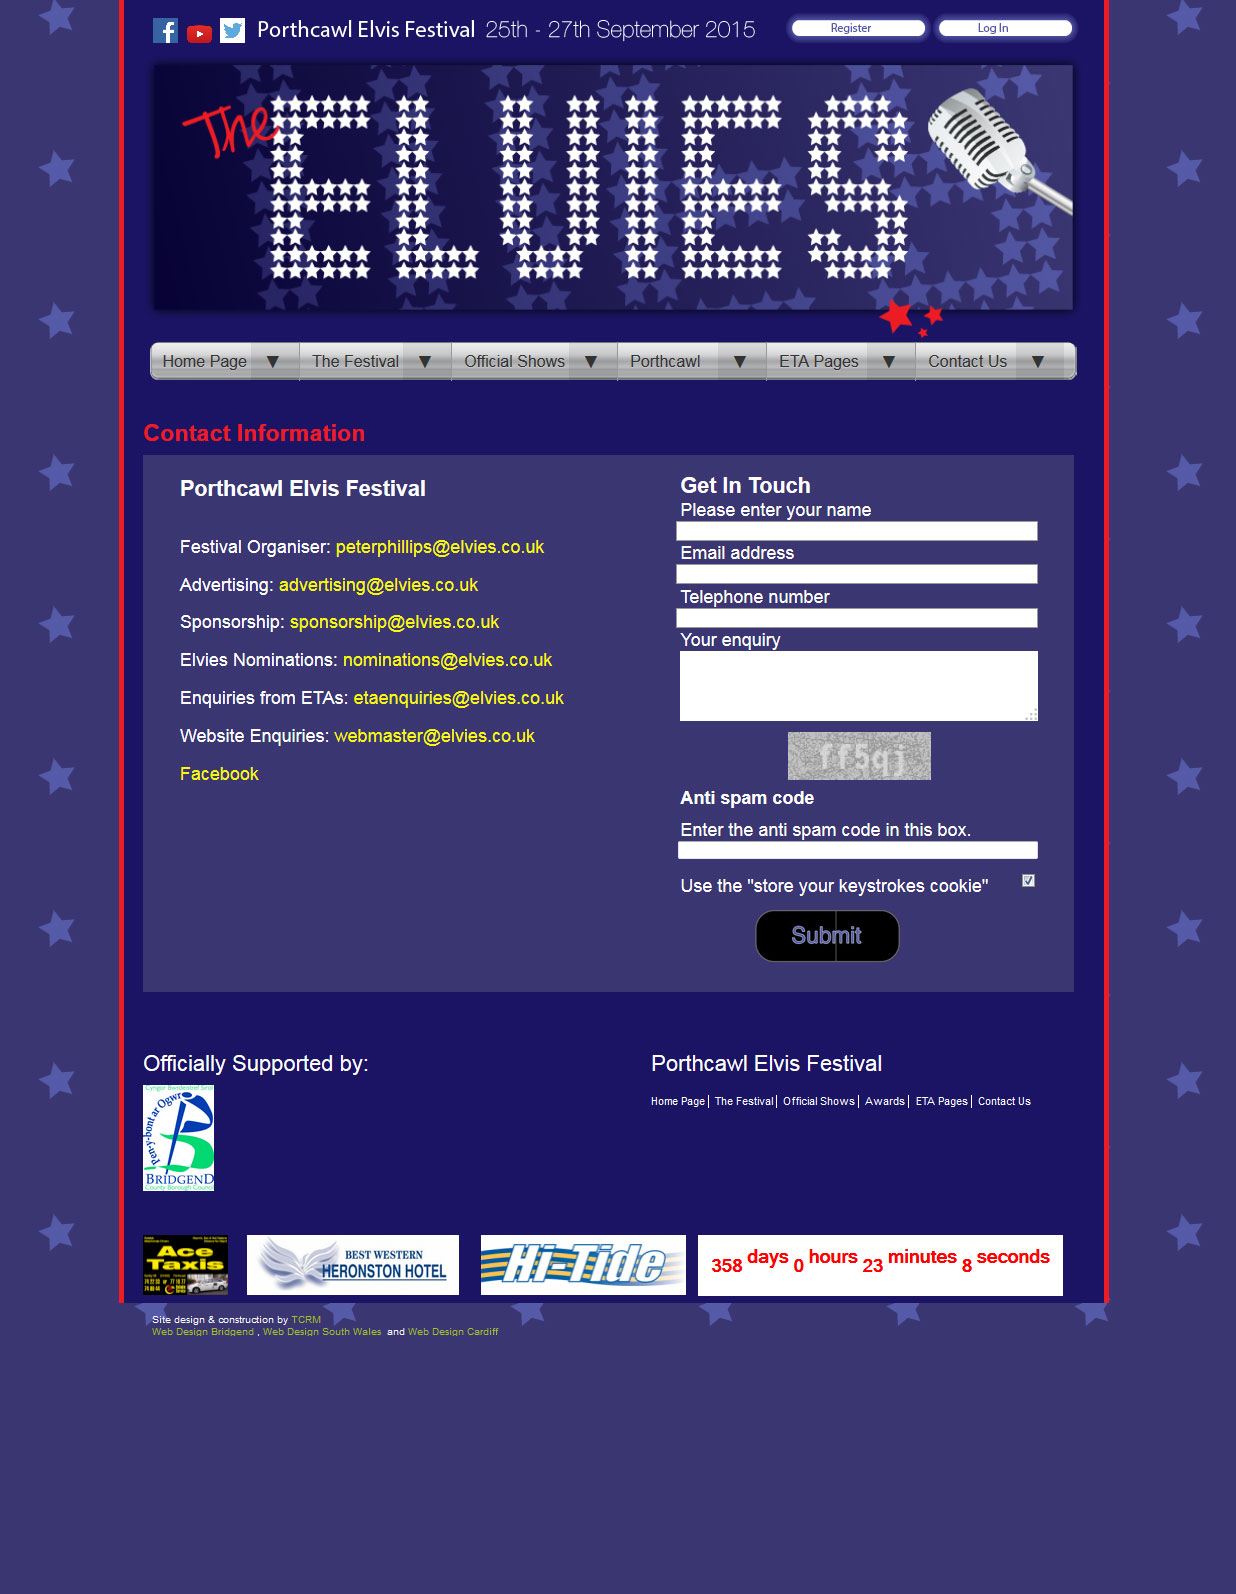 An image from the Elvies web site